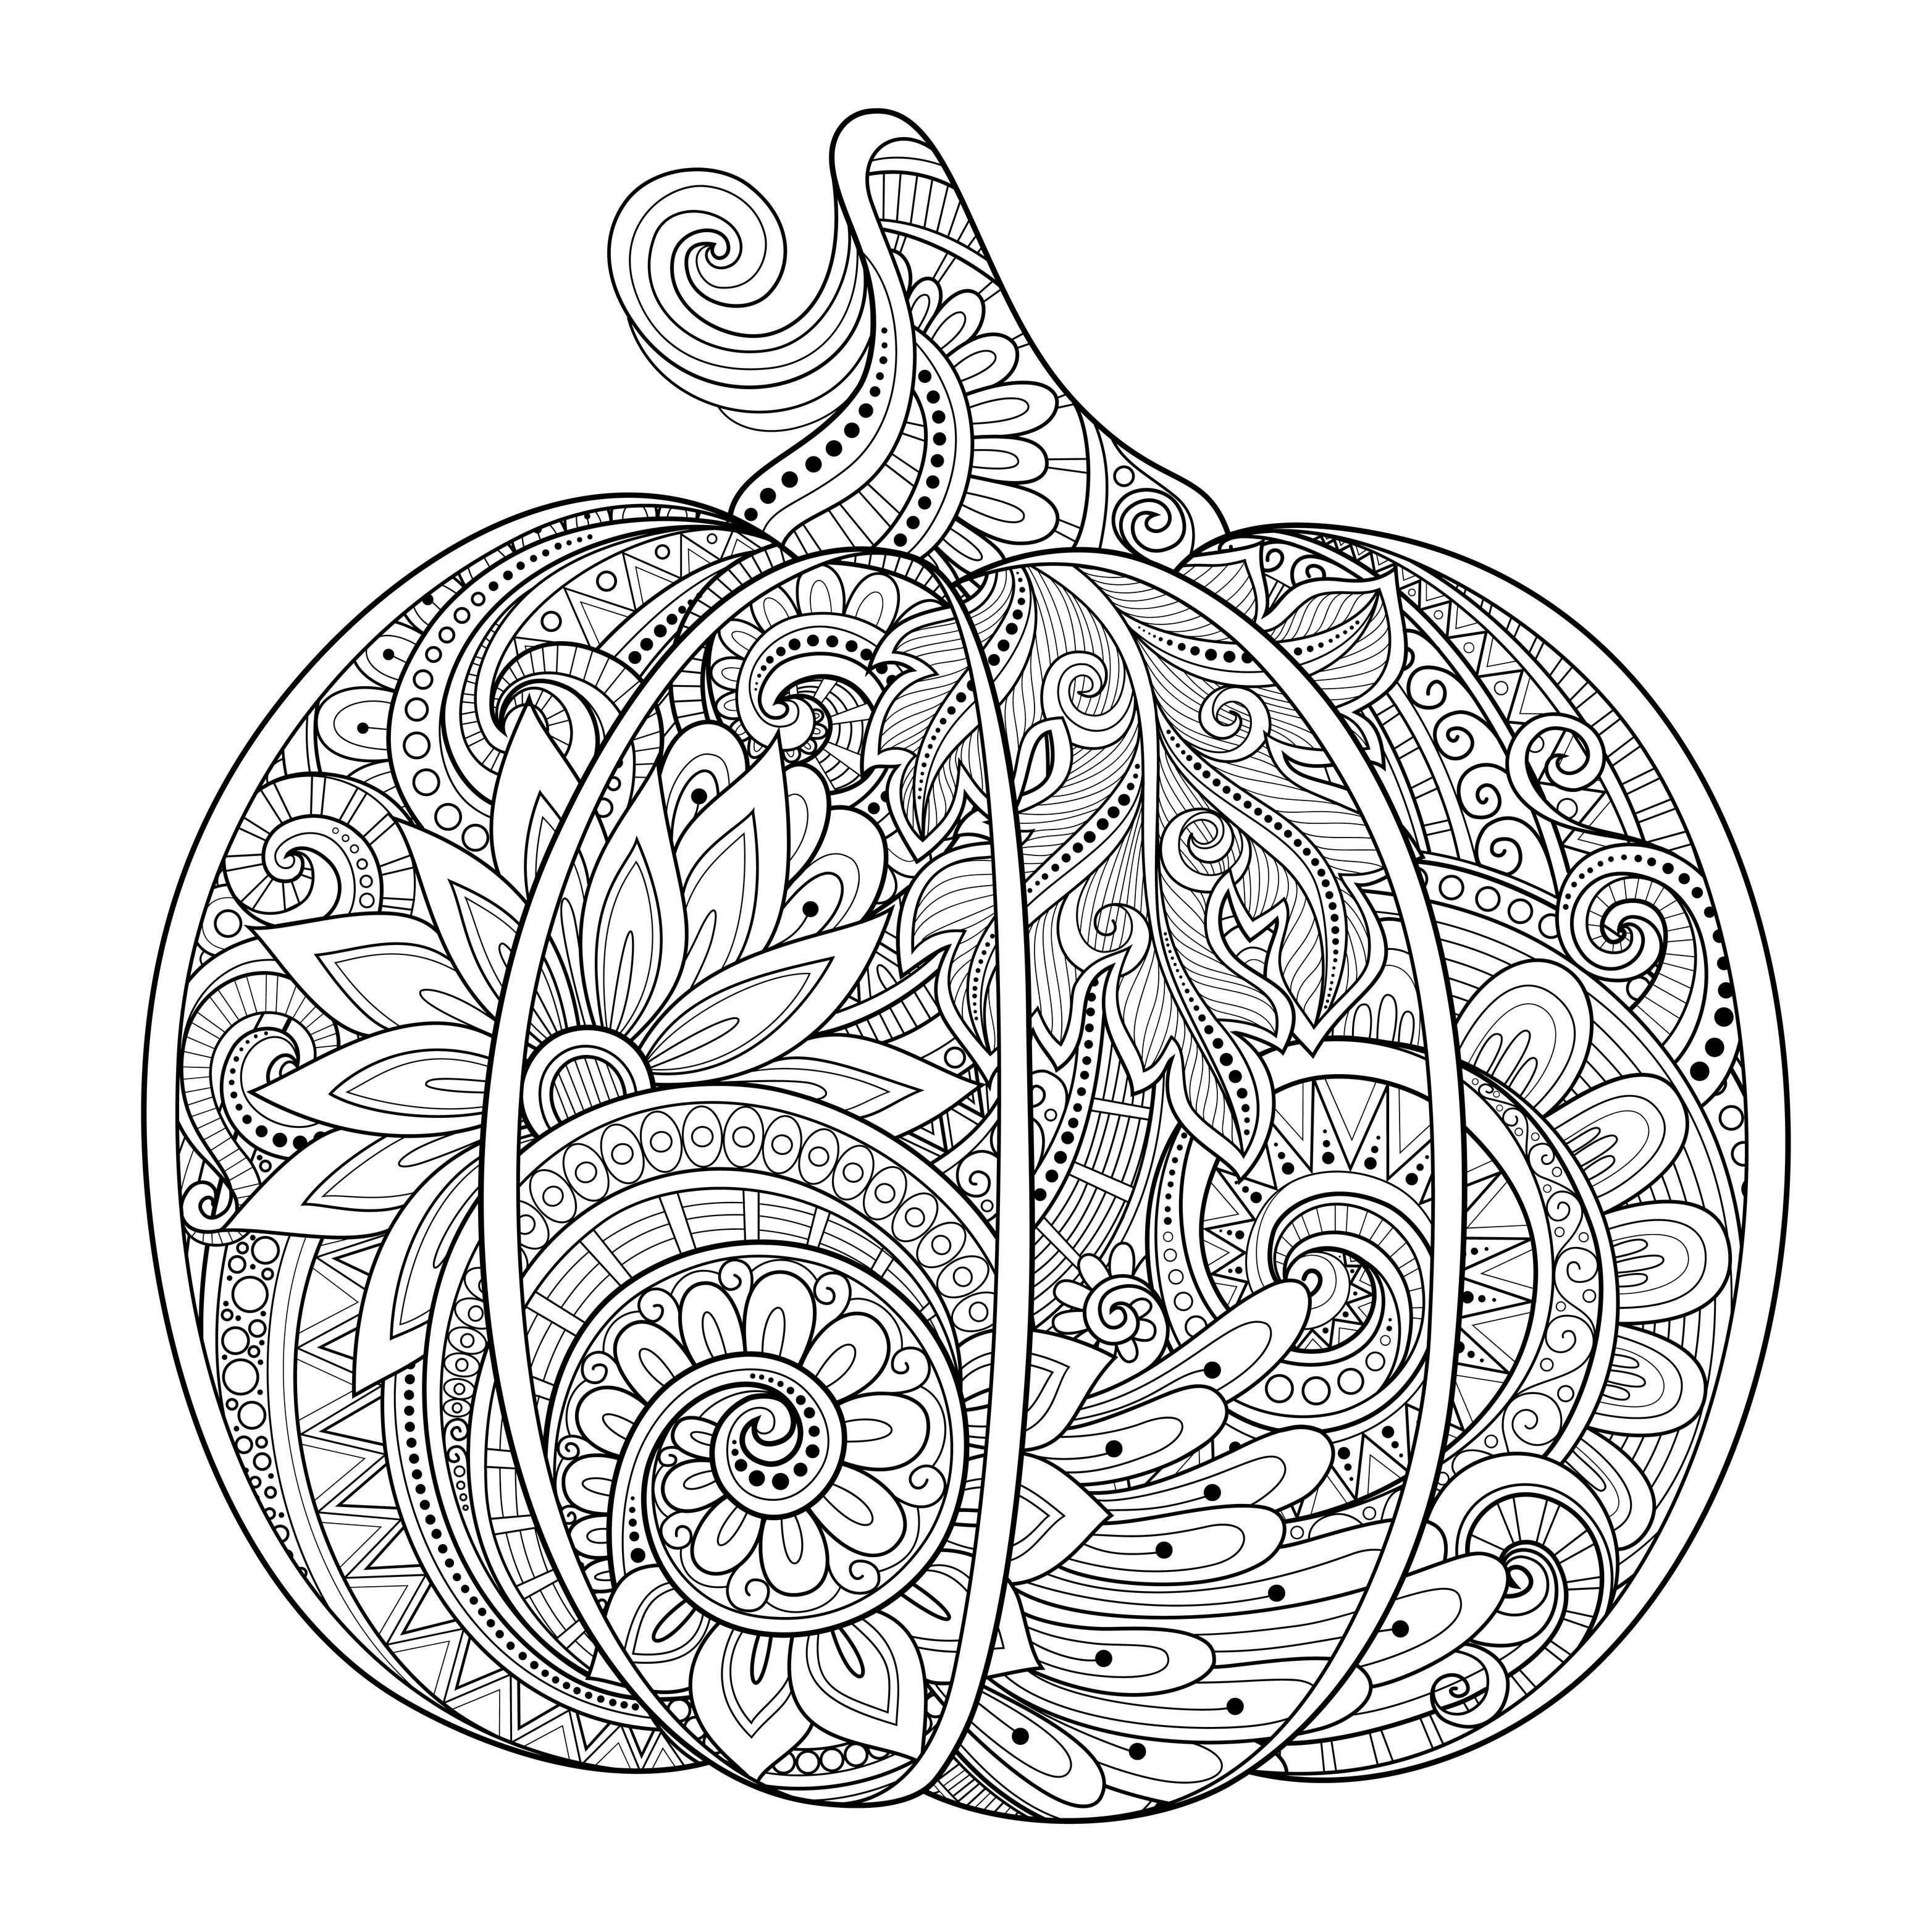 Pumpkin Coloring Sheets 9ncm Halloween Pumpkin Zentangle Source 123rf Irinarivoruchk Pumpkin Coloring Pages Halloween Coloring Book Thanksgiving Coloring Pages